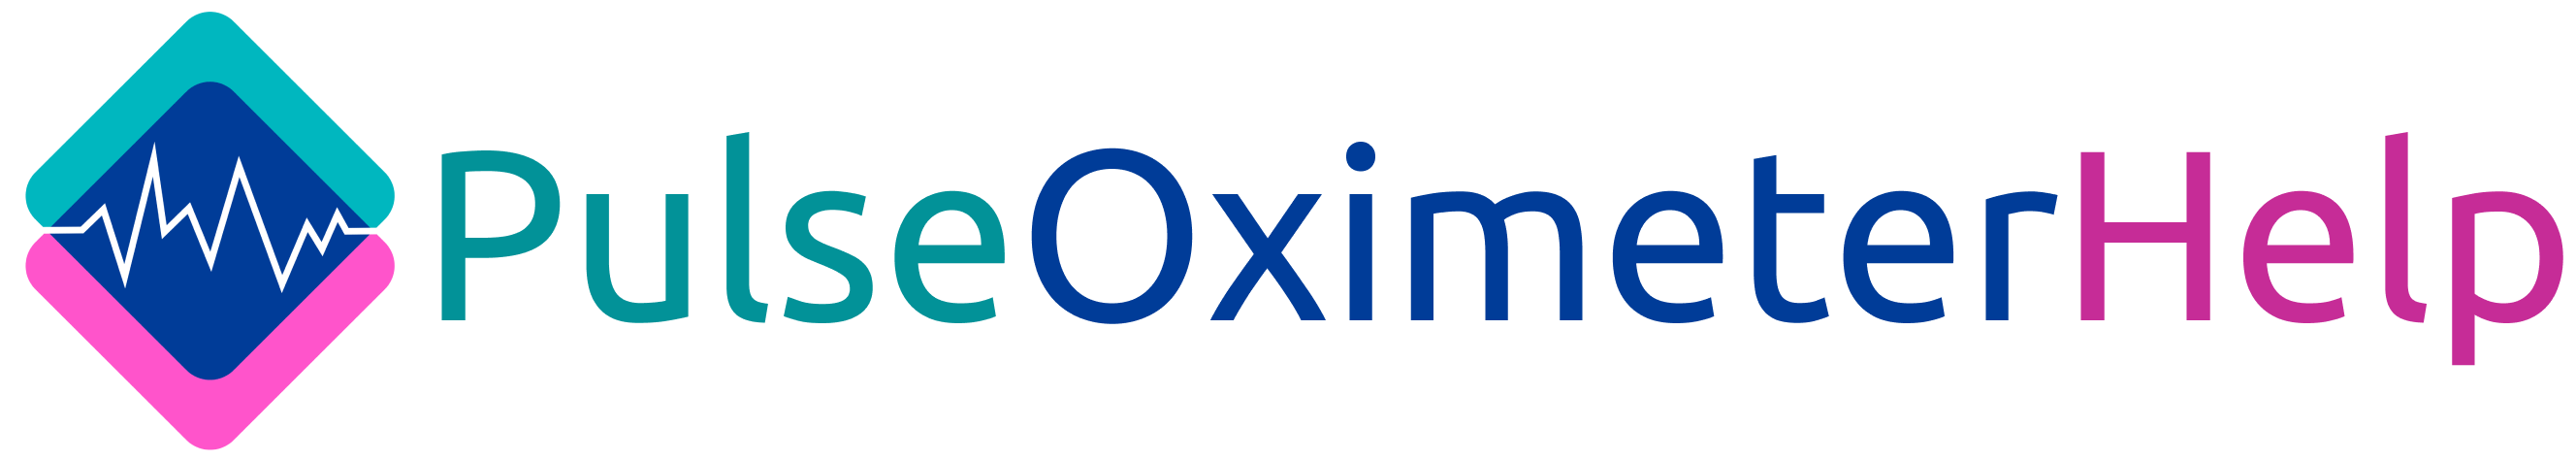 10 Best Pulse Oximter to Buy